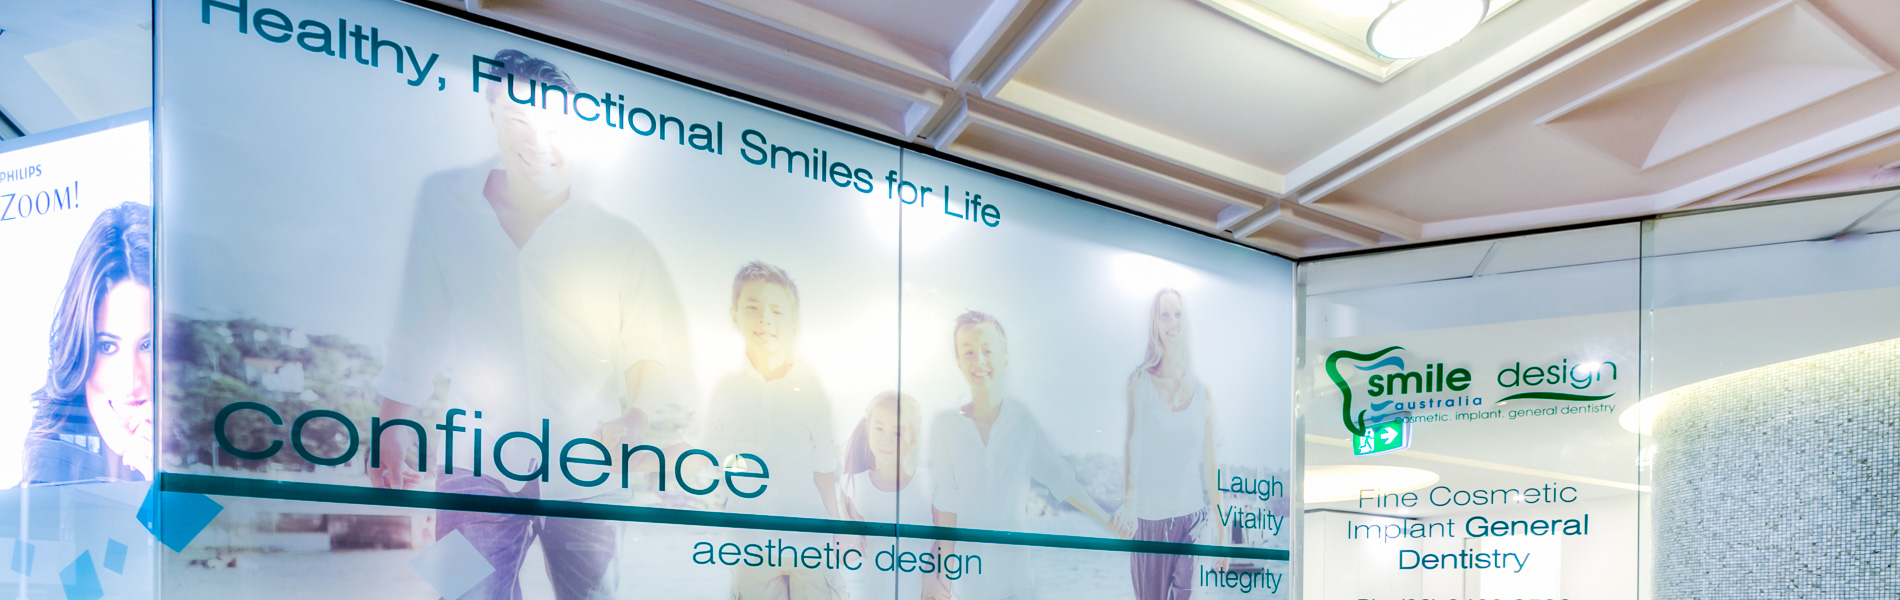 smile by design banner image-5